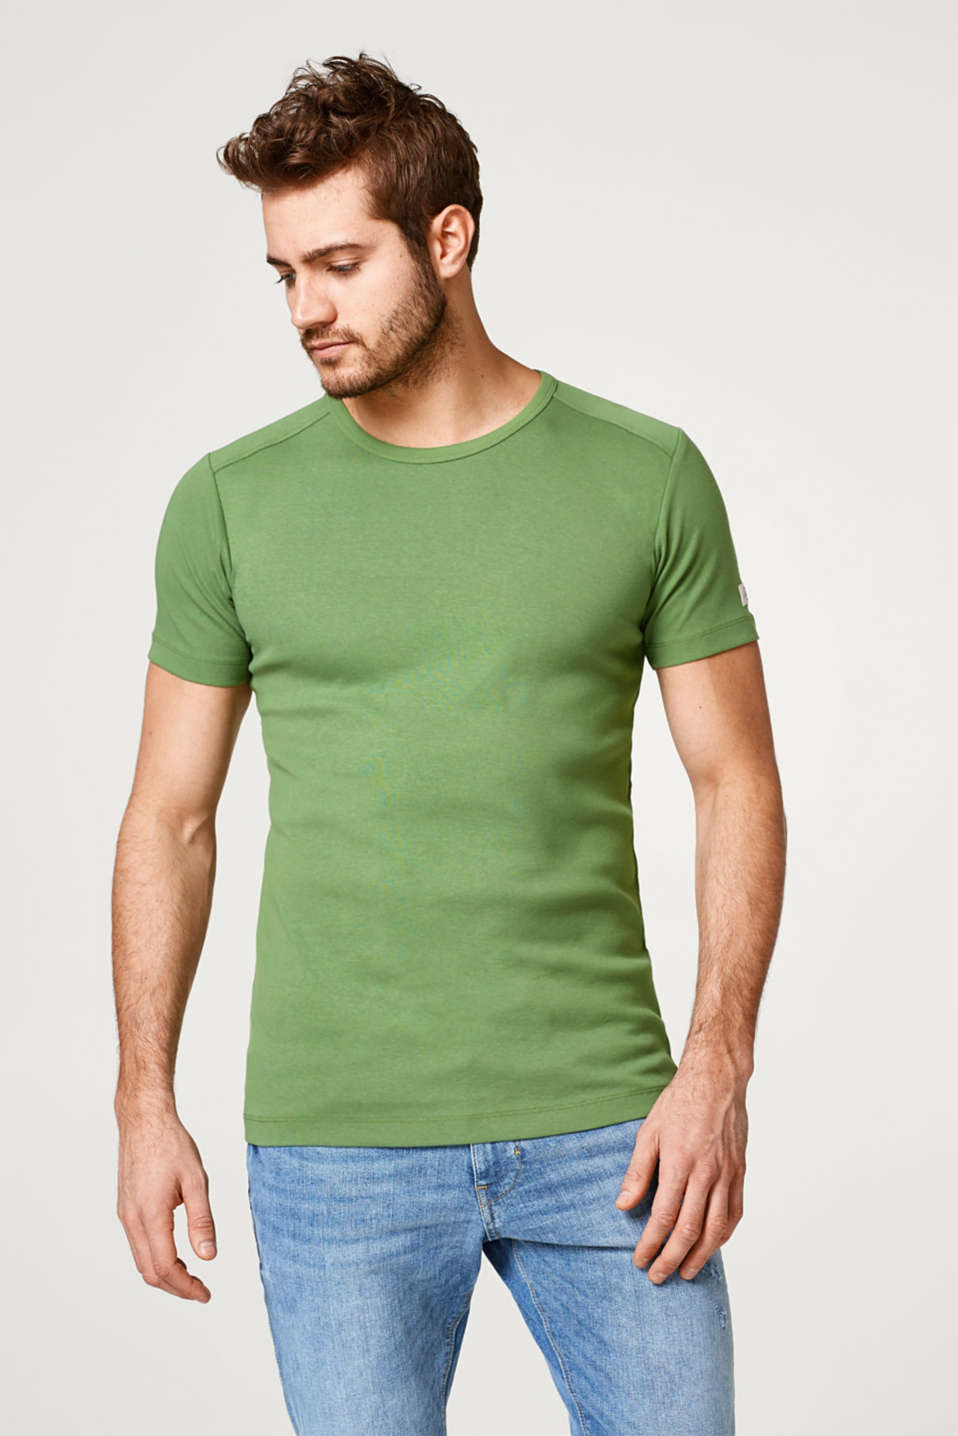 Esprit - Basic T-shirt in full needle rib, made of cotton